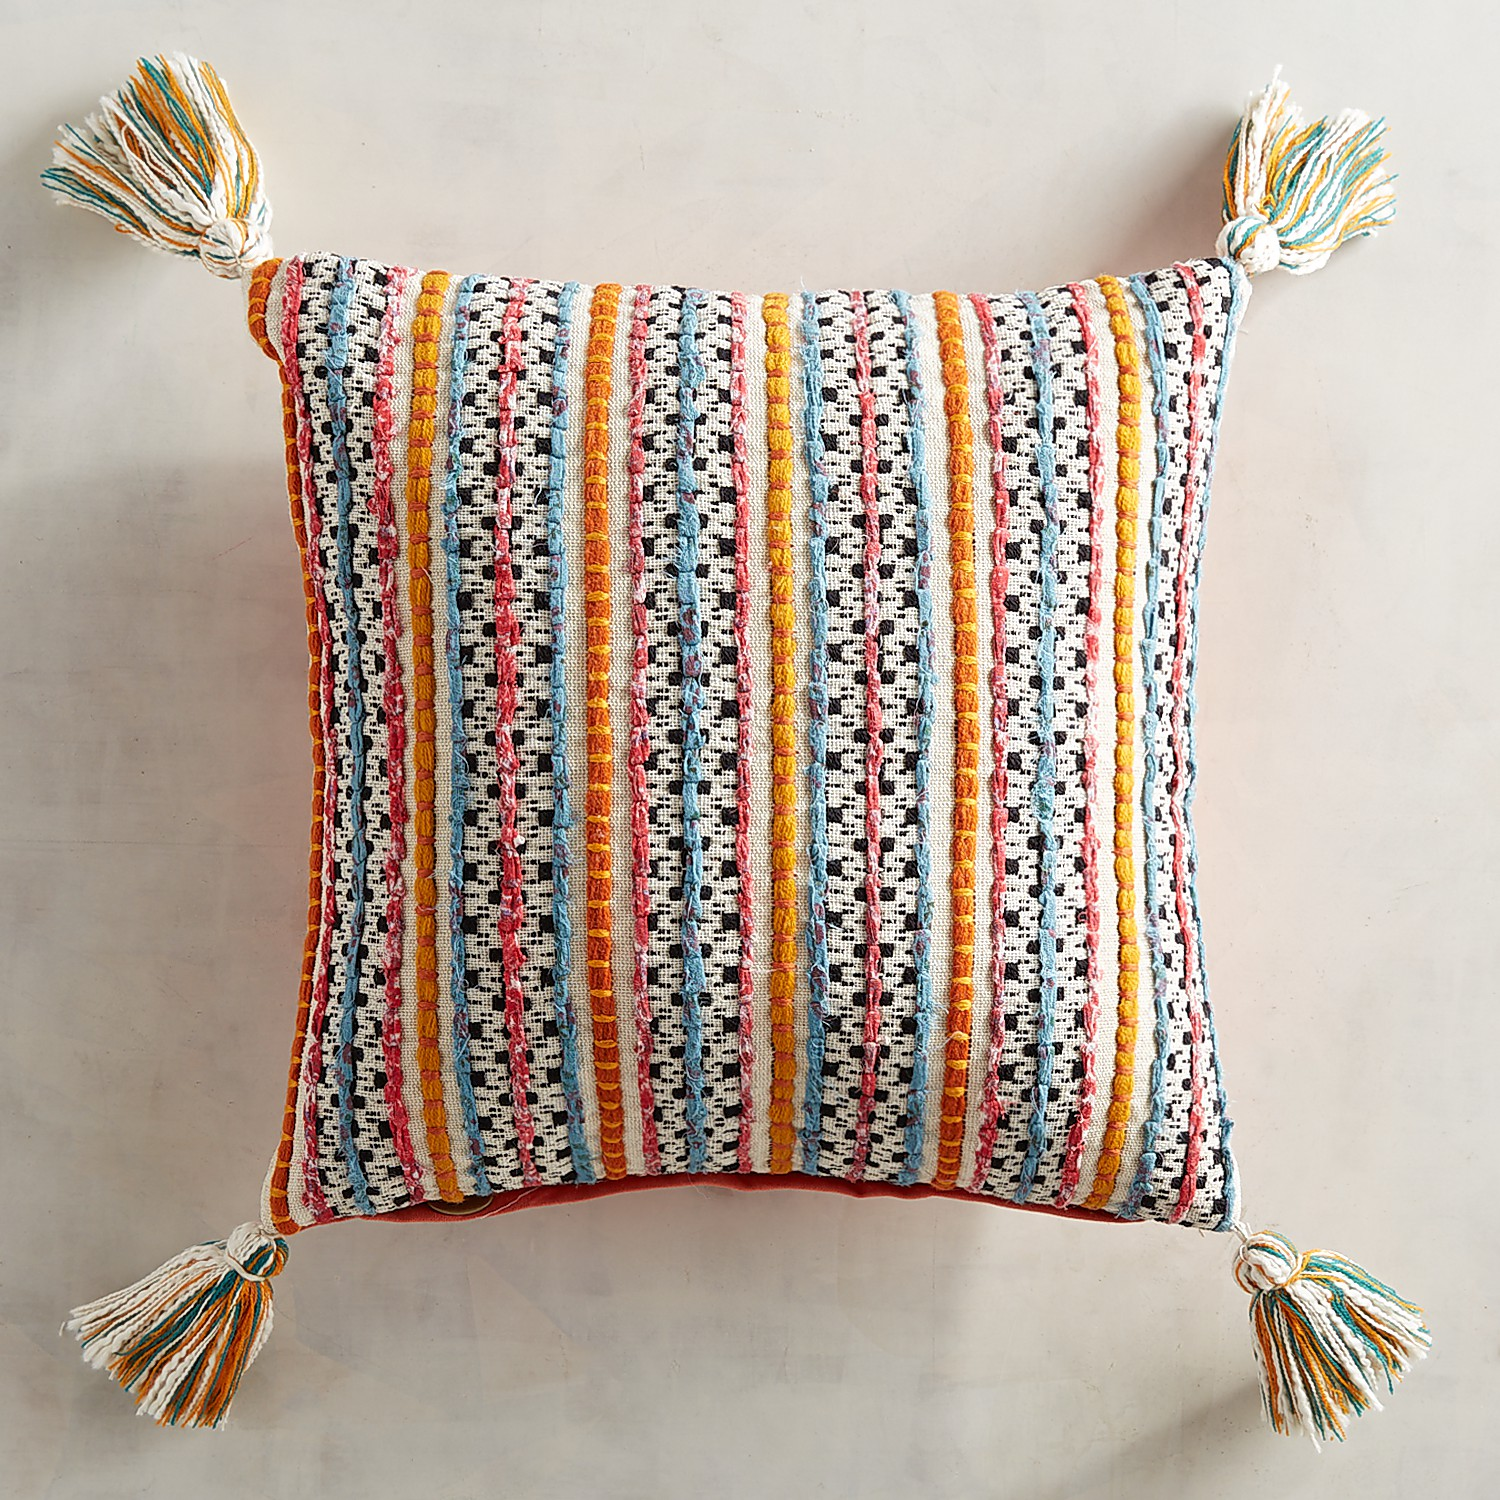 Global Textured Striped Pillow with Tassels